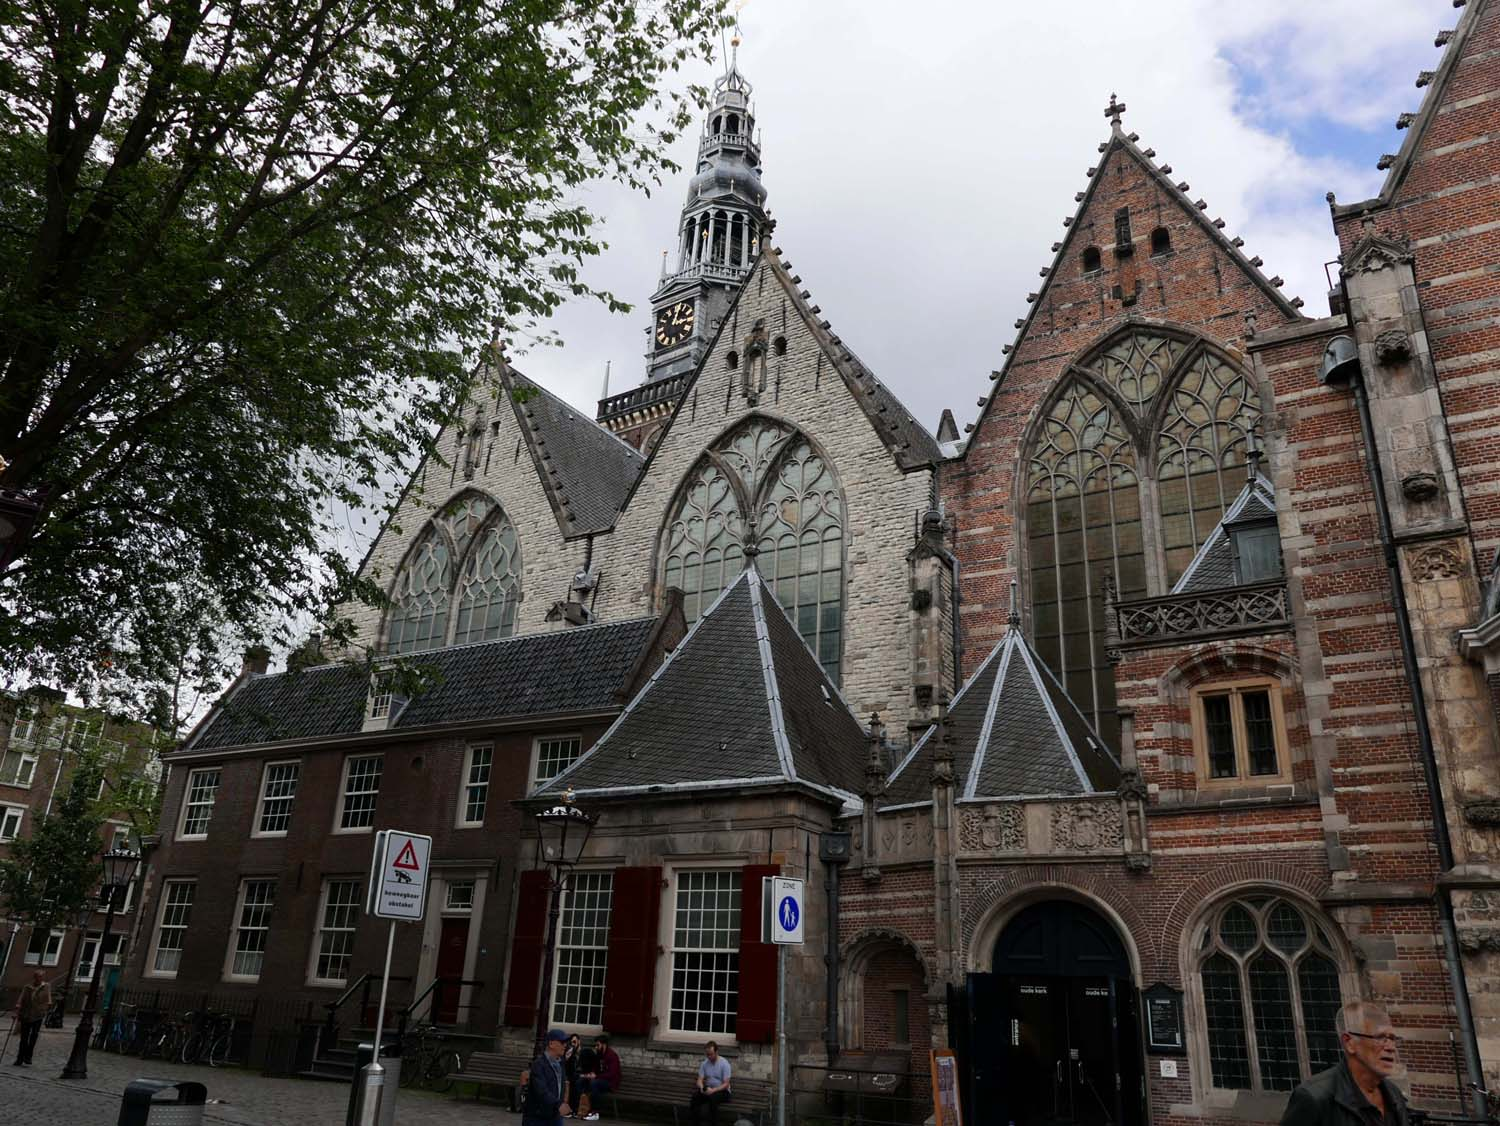 De Oude Kerk (the old church)